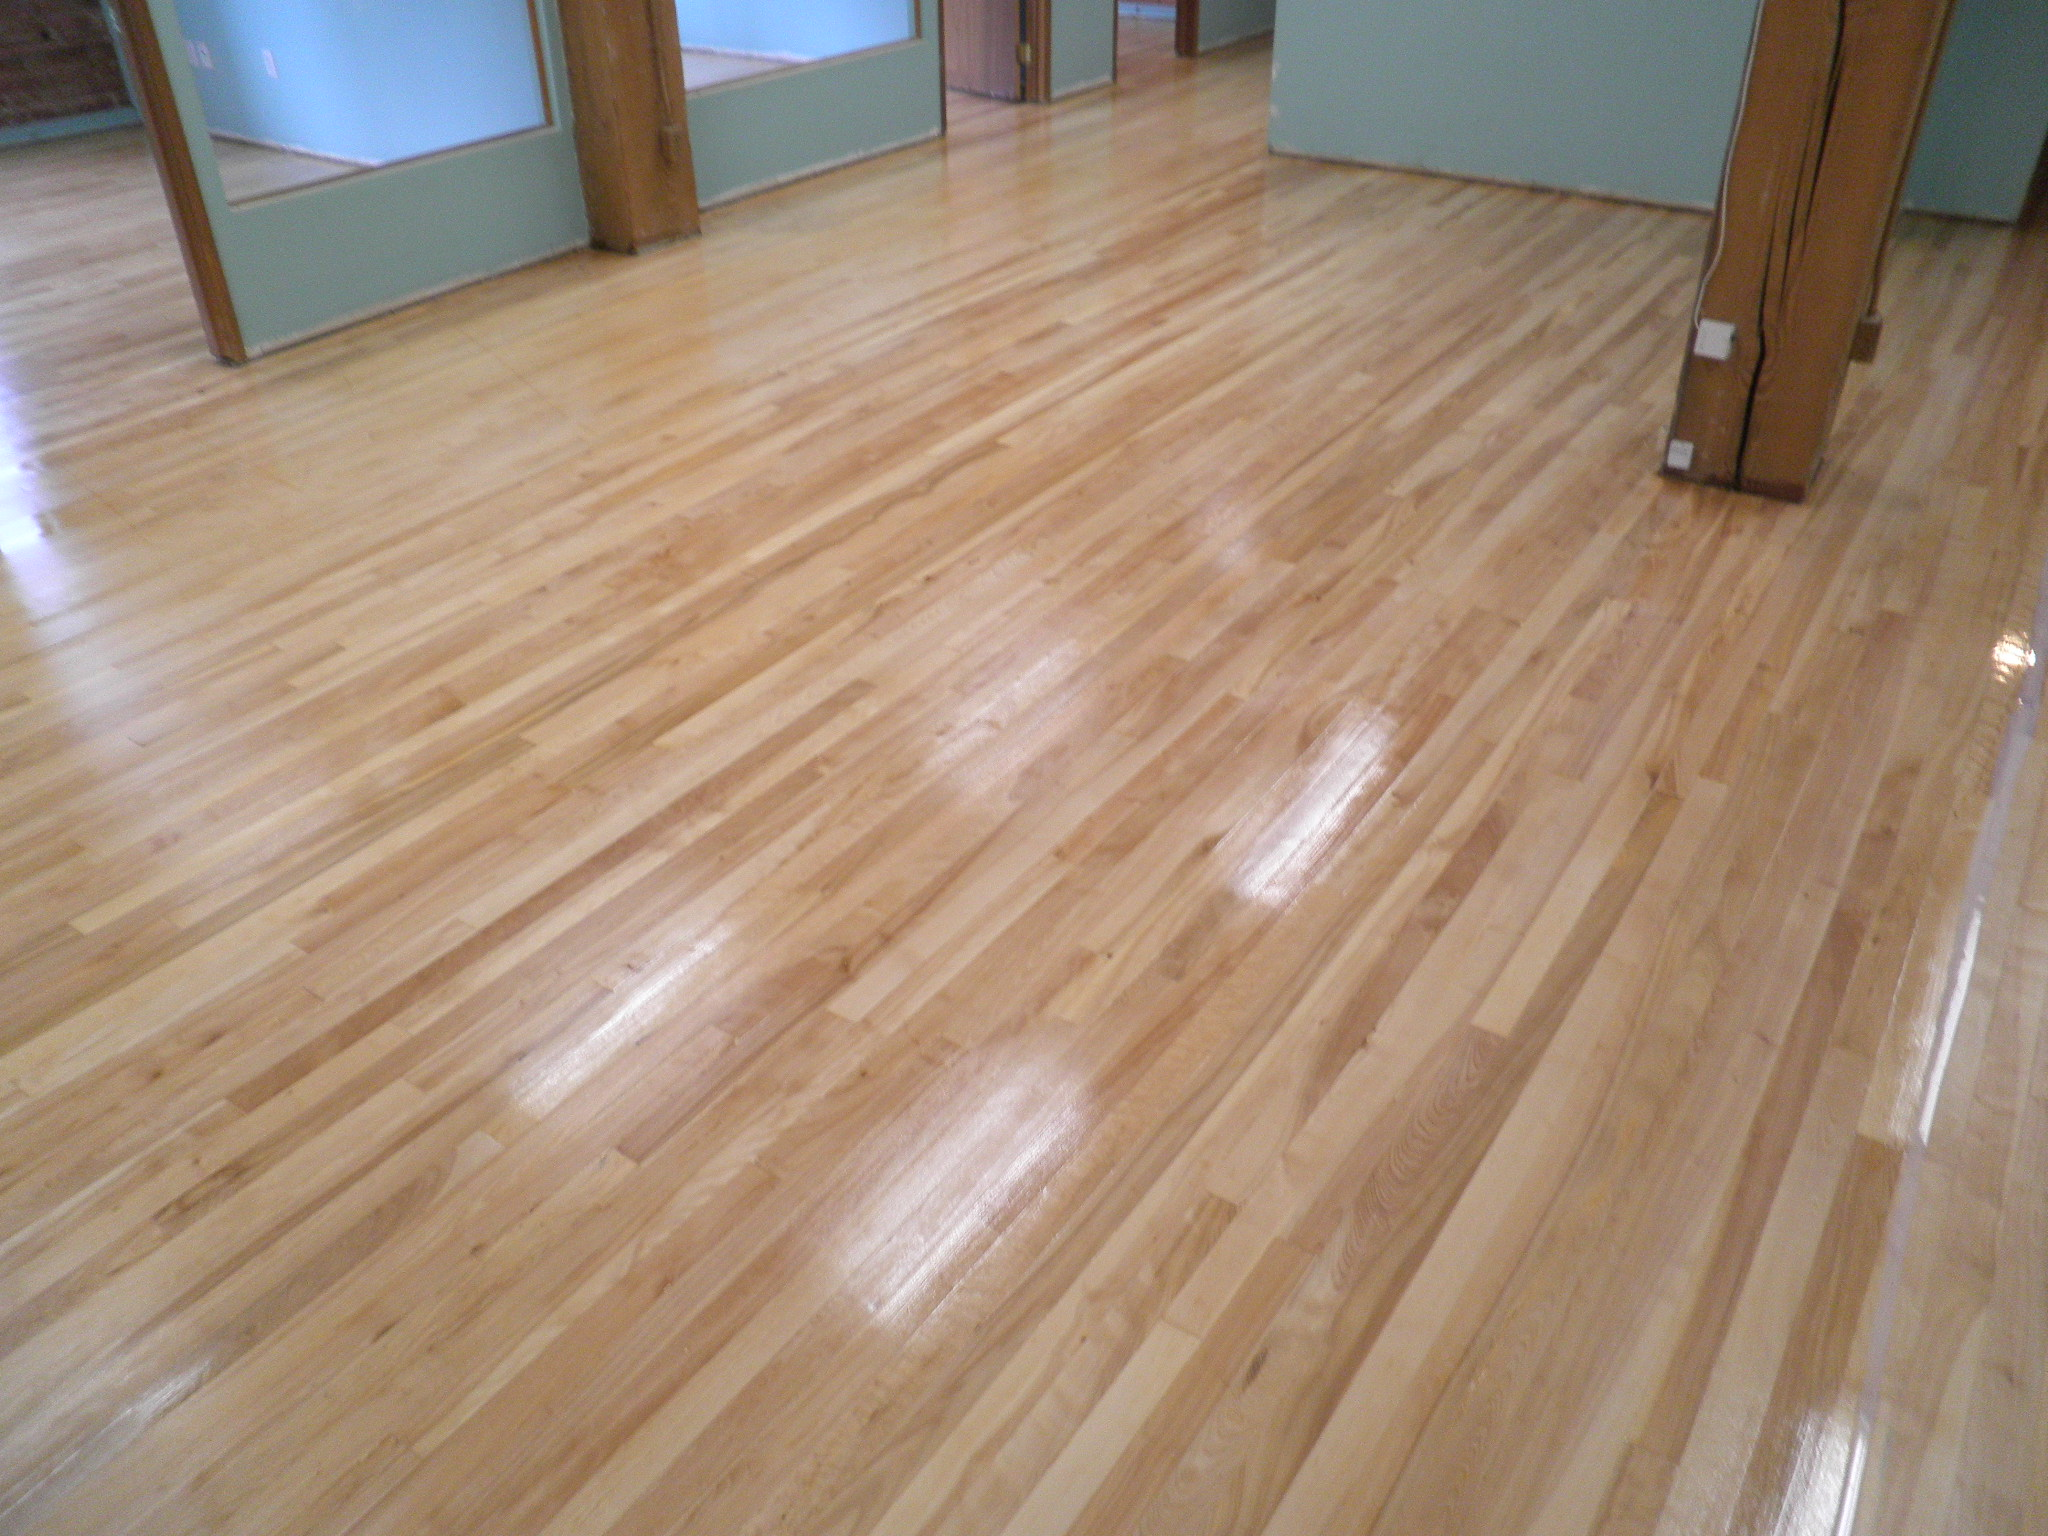 Birch Hardwood Flooring Of Engineered Flooring New Westminster Laminate Flooring